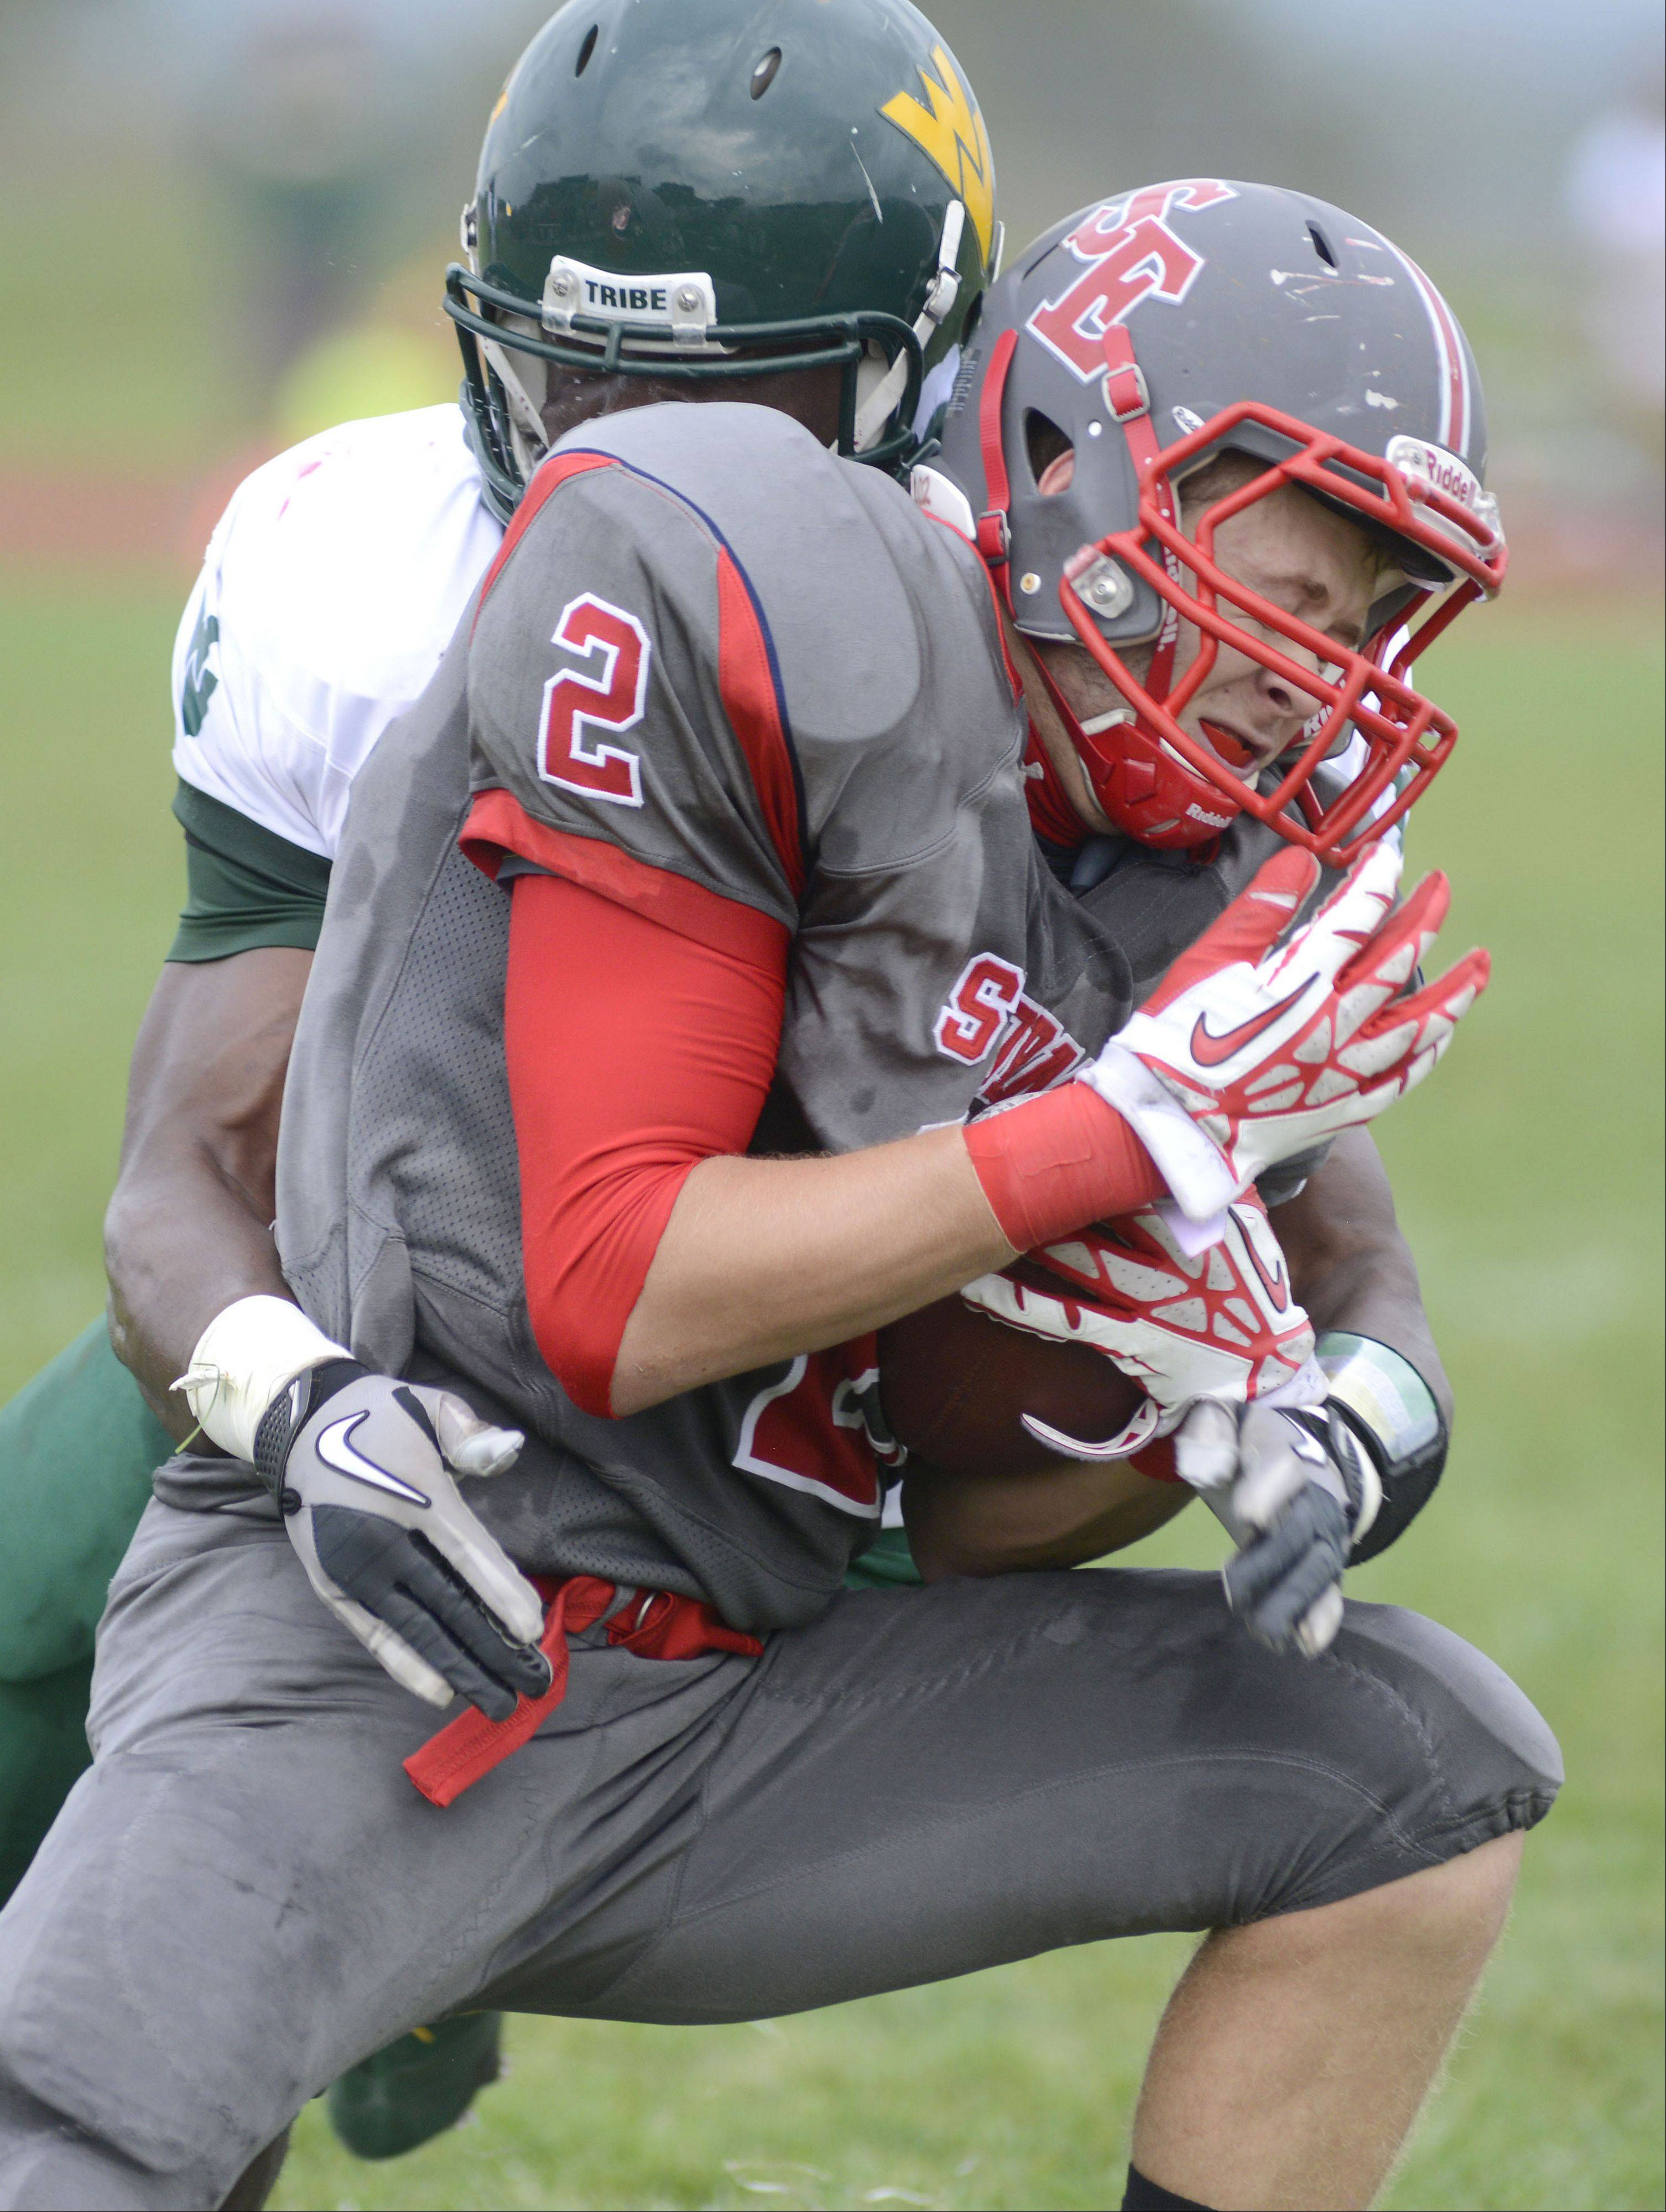 South Elgin's Andrew Kamienski is tackled hard by Waubonsie Valley's DeMario Webb in the first quarter on Saturday, October 5.